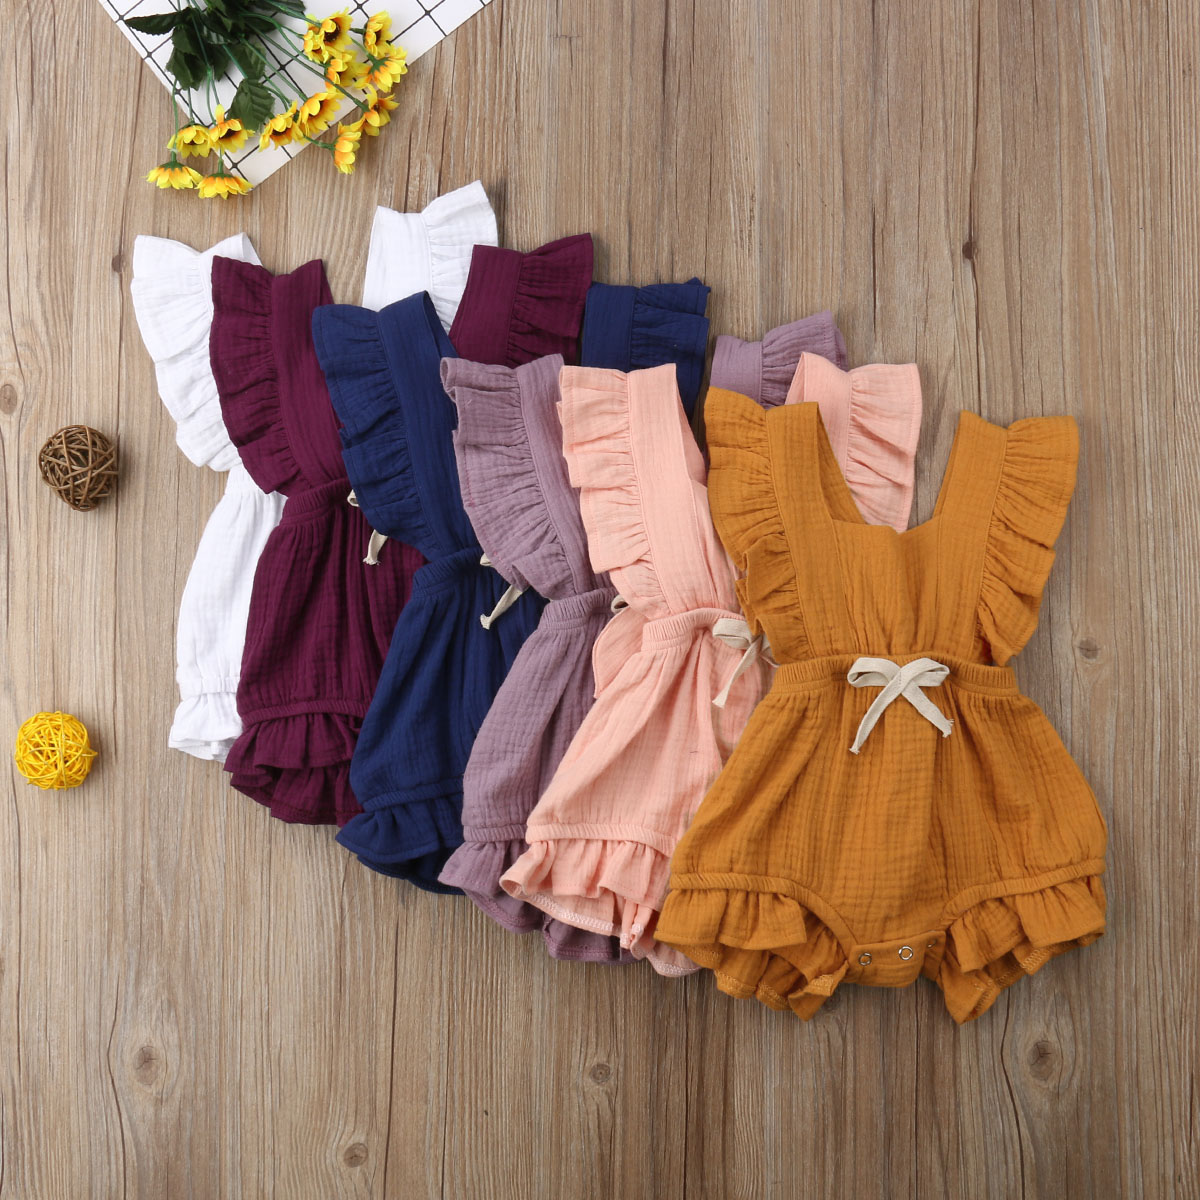 Toddler Infant Newborn Baby Girl Ruffle   Rompers   One-Pieces Clothes Vintage Baby Girl Summer Sleeveless   Romper   Jumpsuit Sunsuit